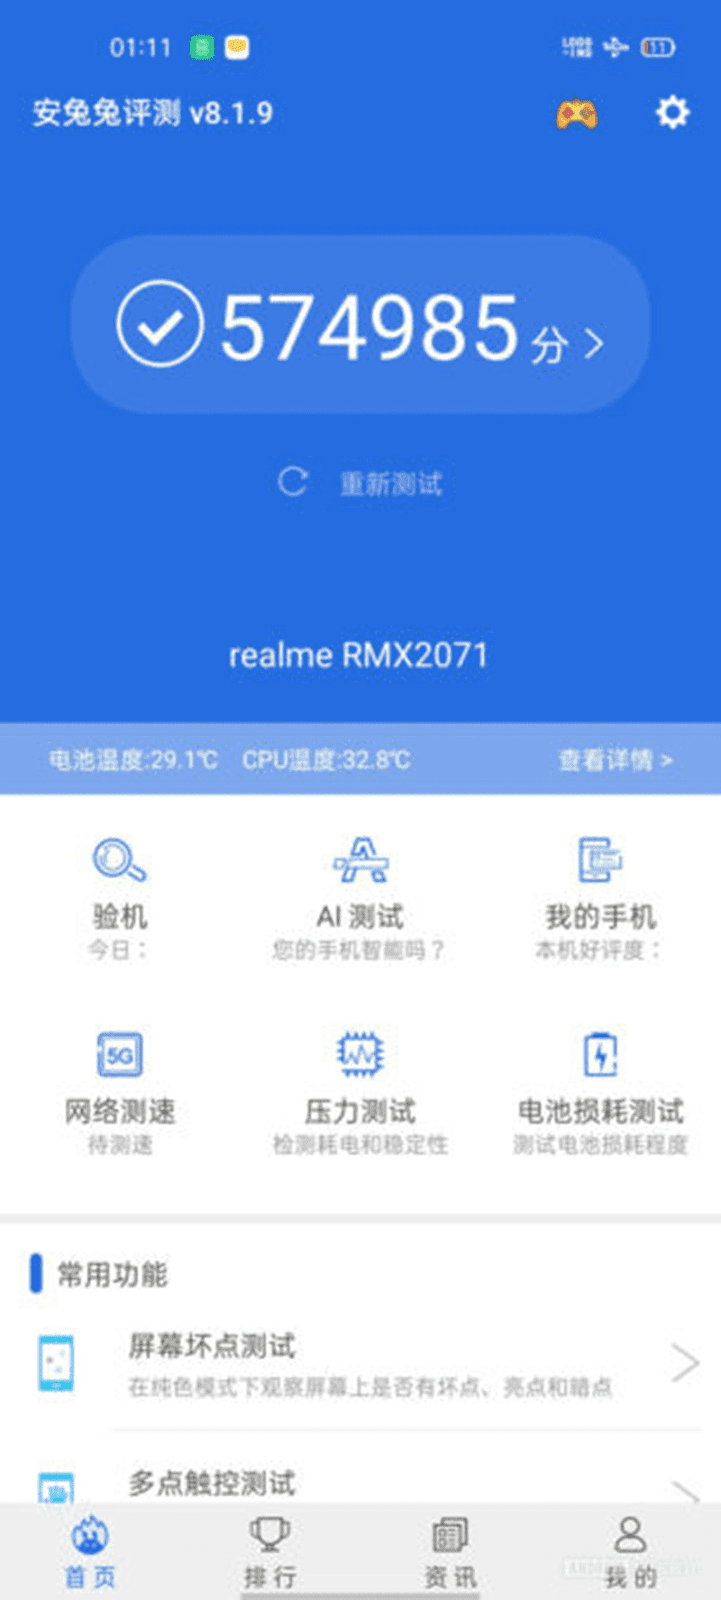 The AnTuTu score of the mystery realme device